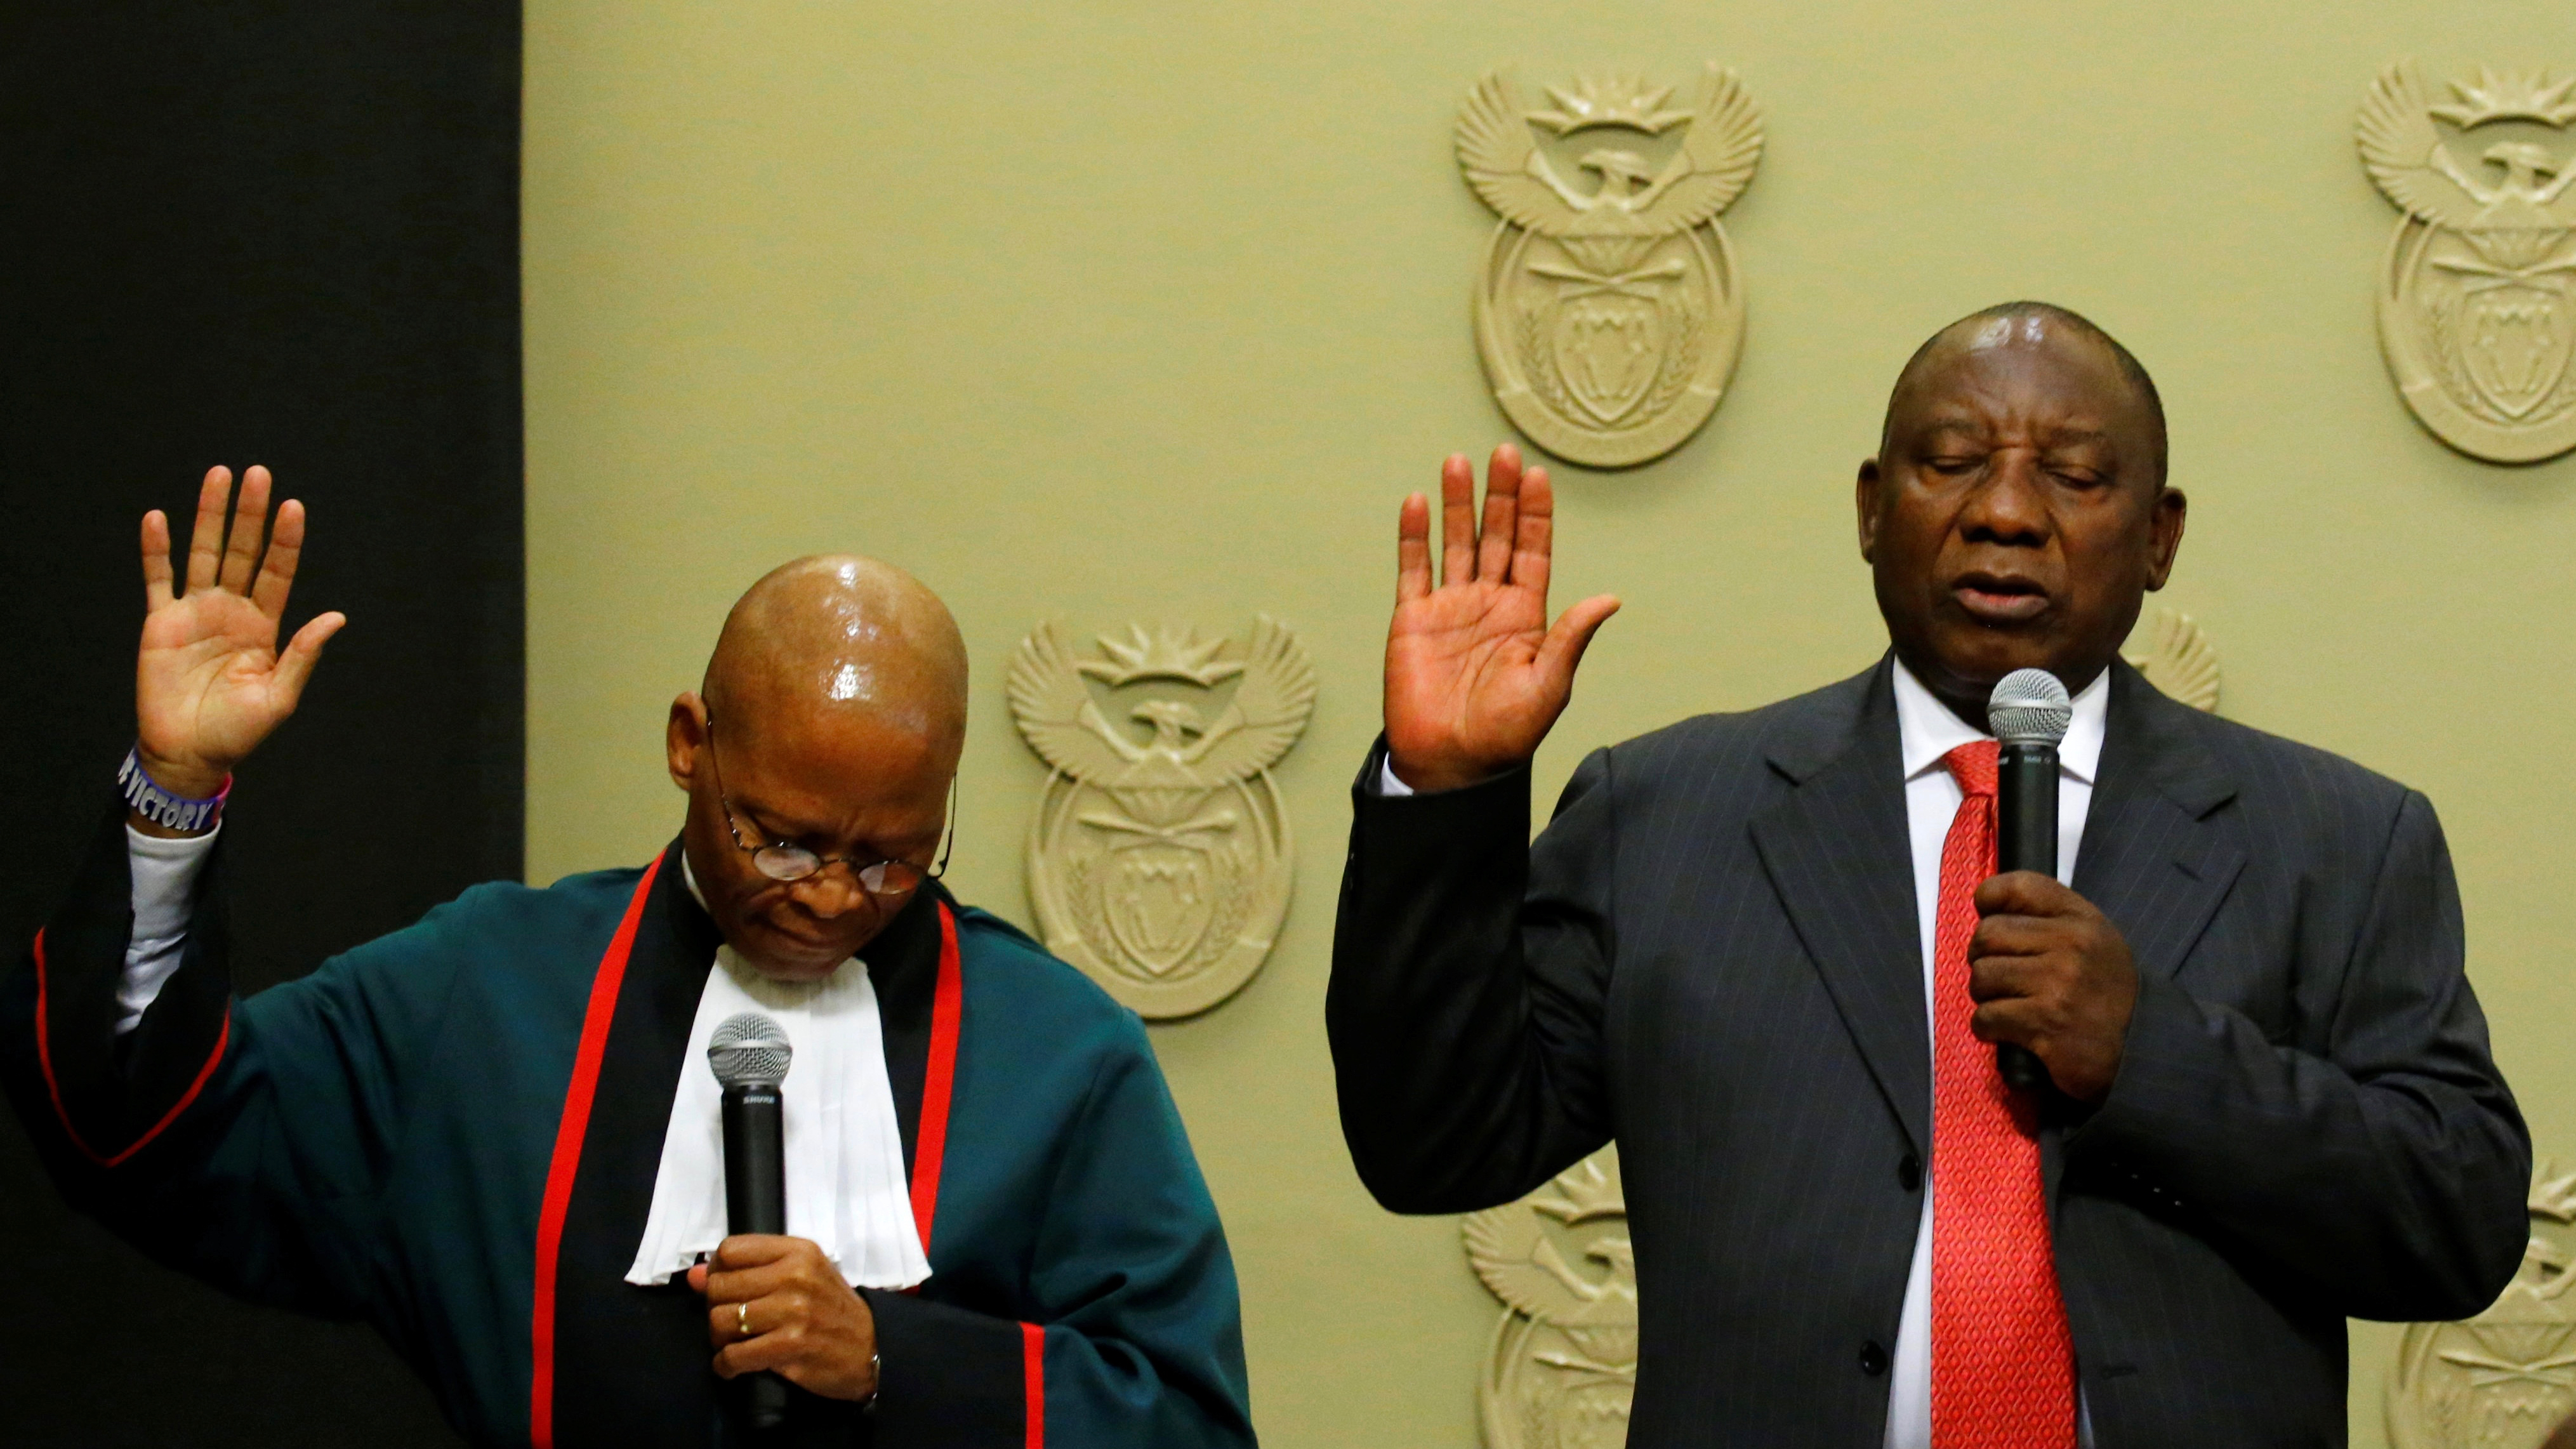 Cyril Ramaphosa elected as South Africa's new president after Jacob Zuma resigns